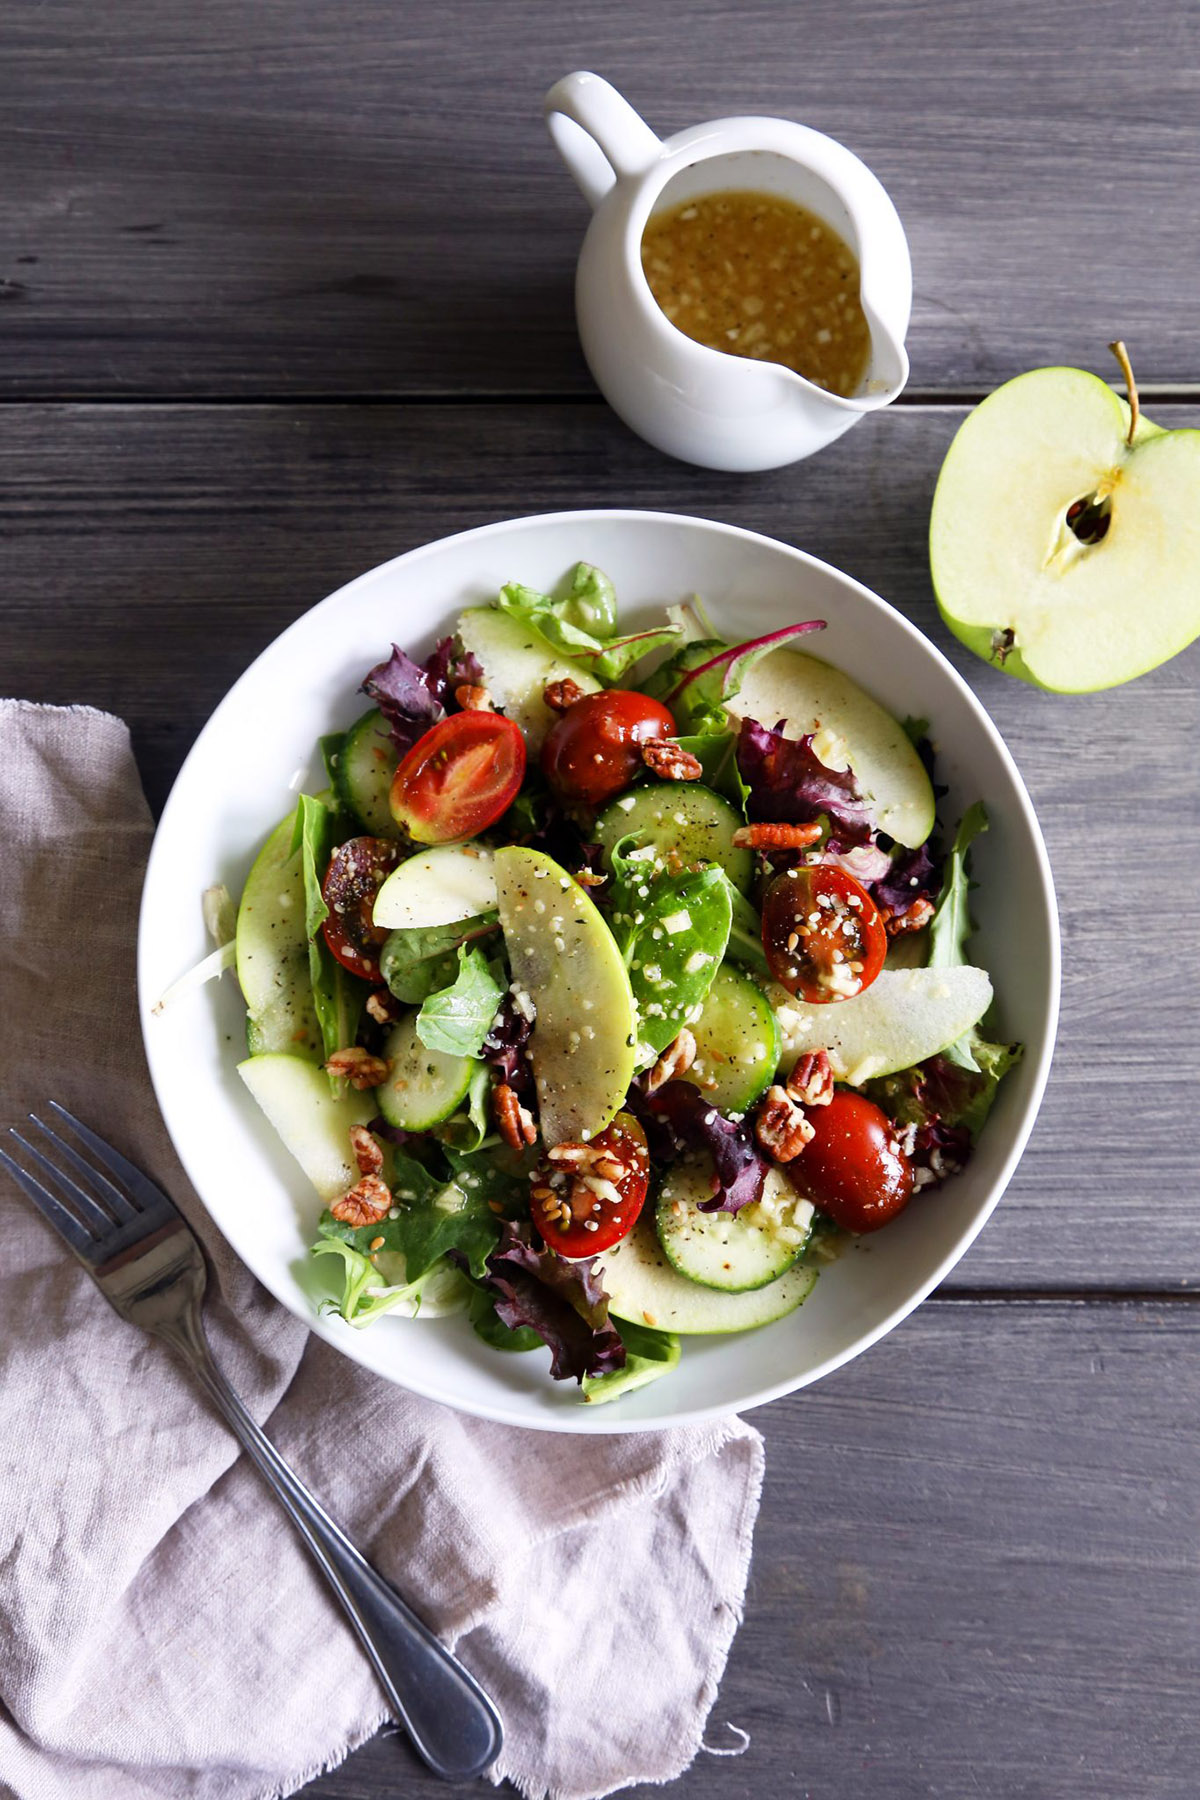 Mixed Greens with Apple Cider Vinaigrette